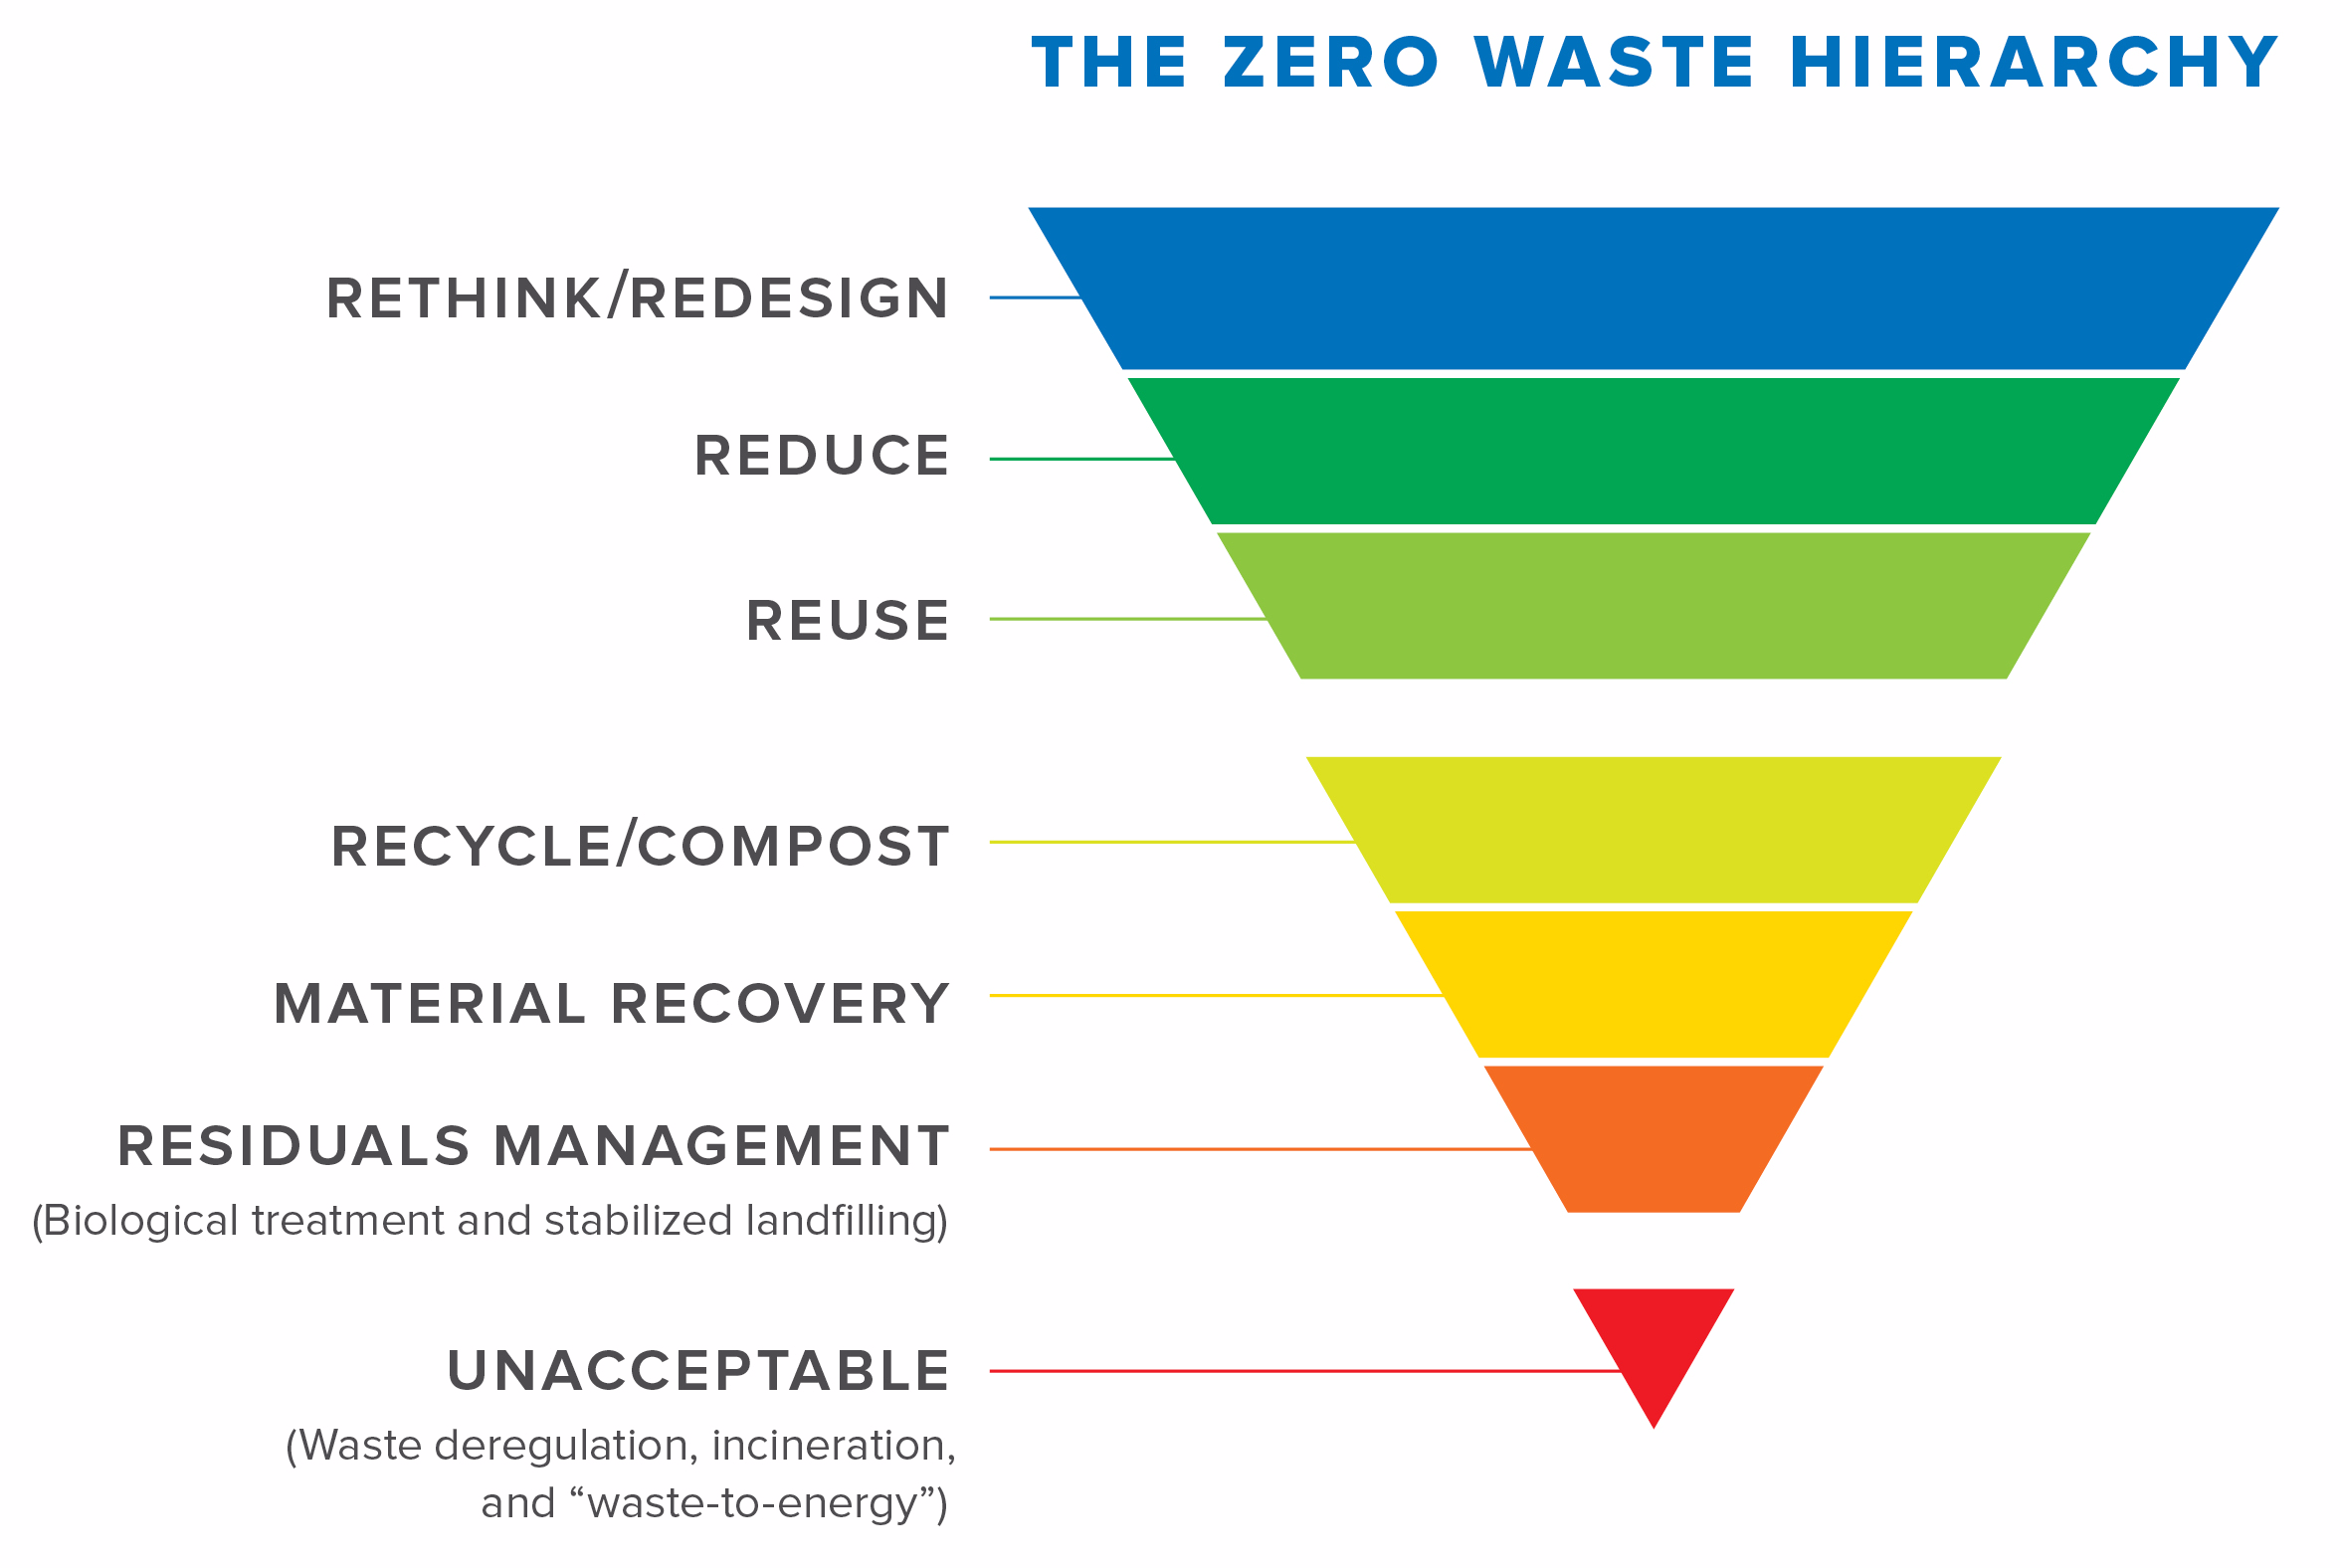 Waste hierarchy from Energy Justice Network.